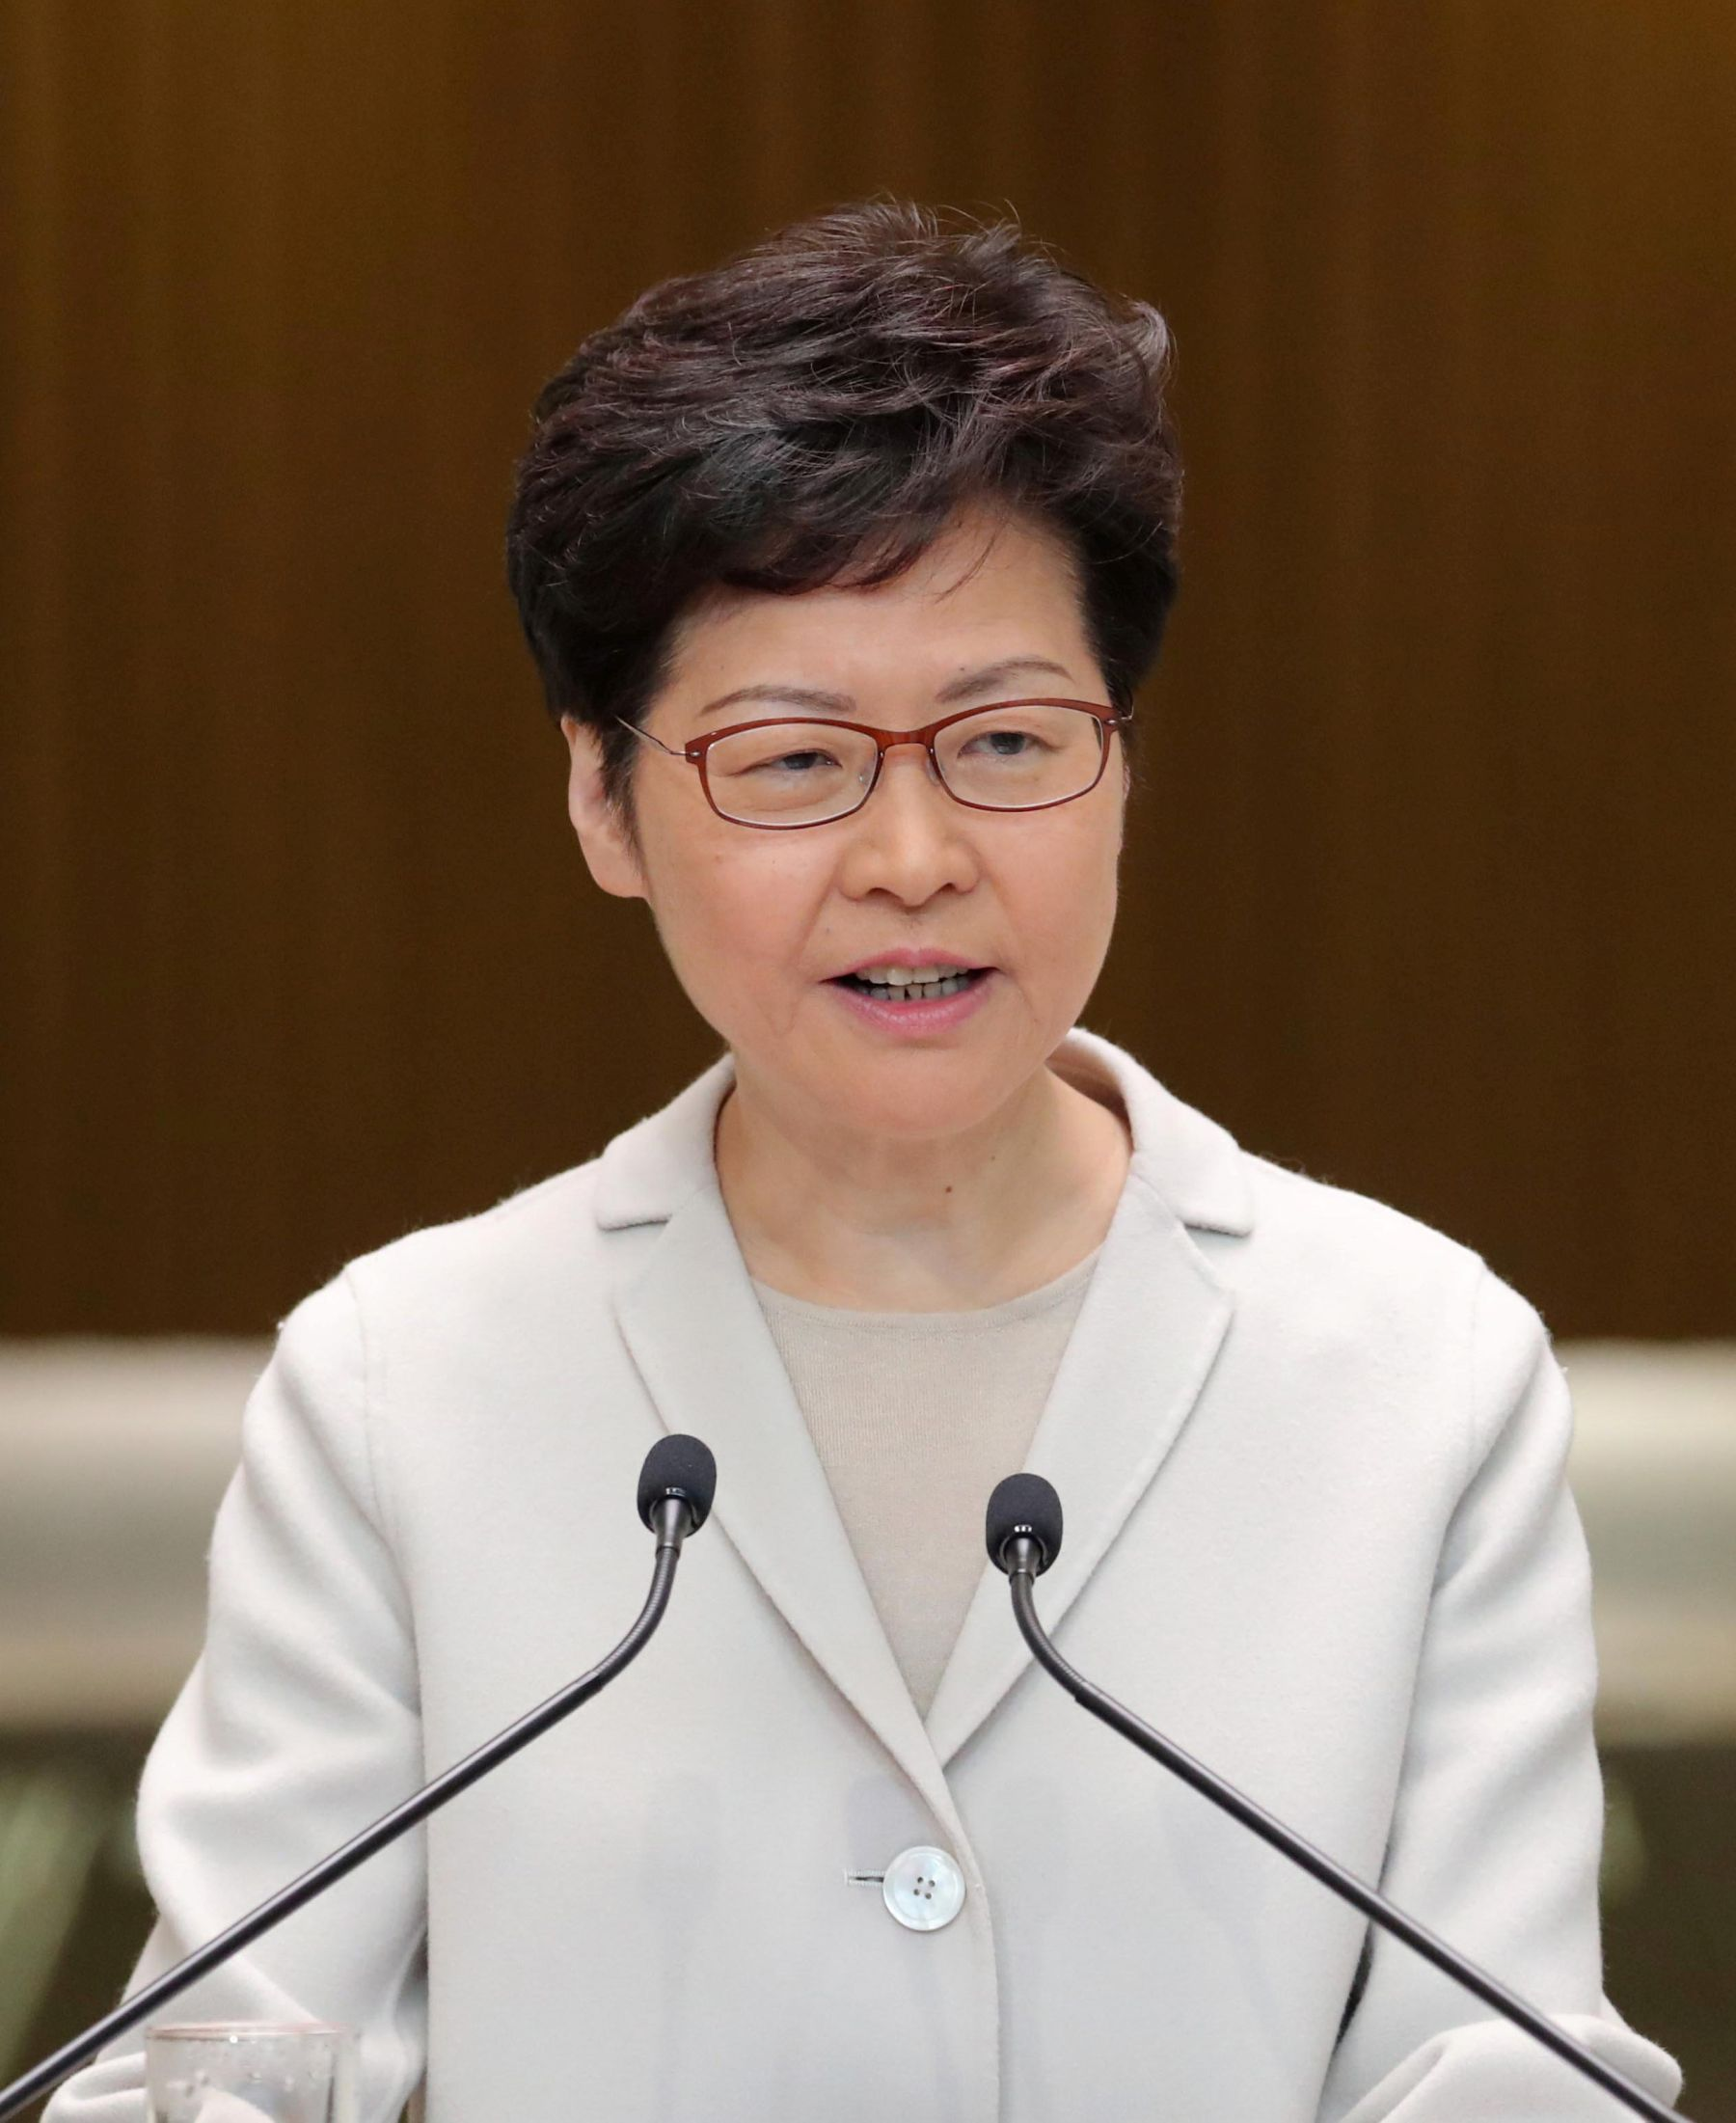 Hong Kong chief executive Carrie Lam news briefing after local elections